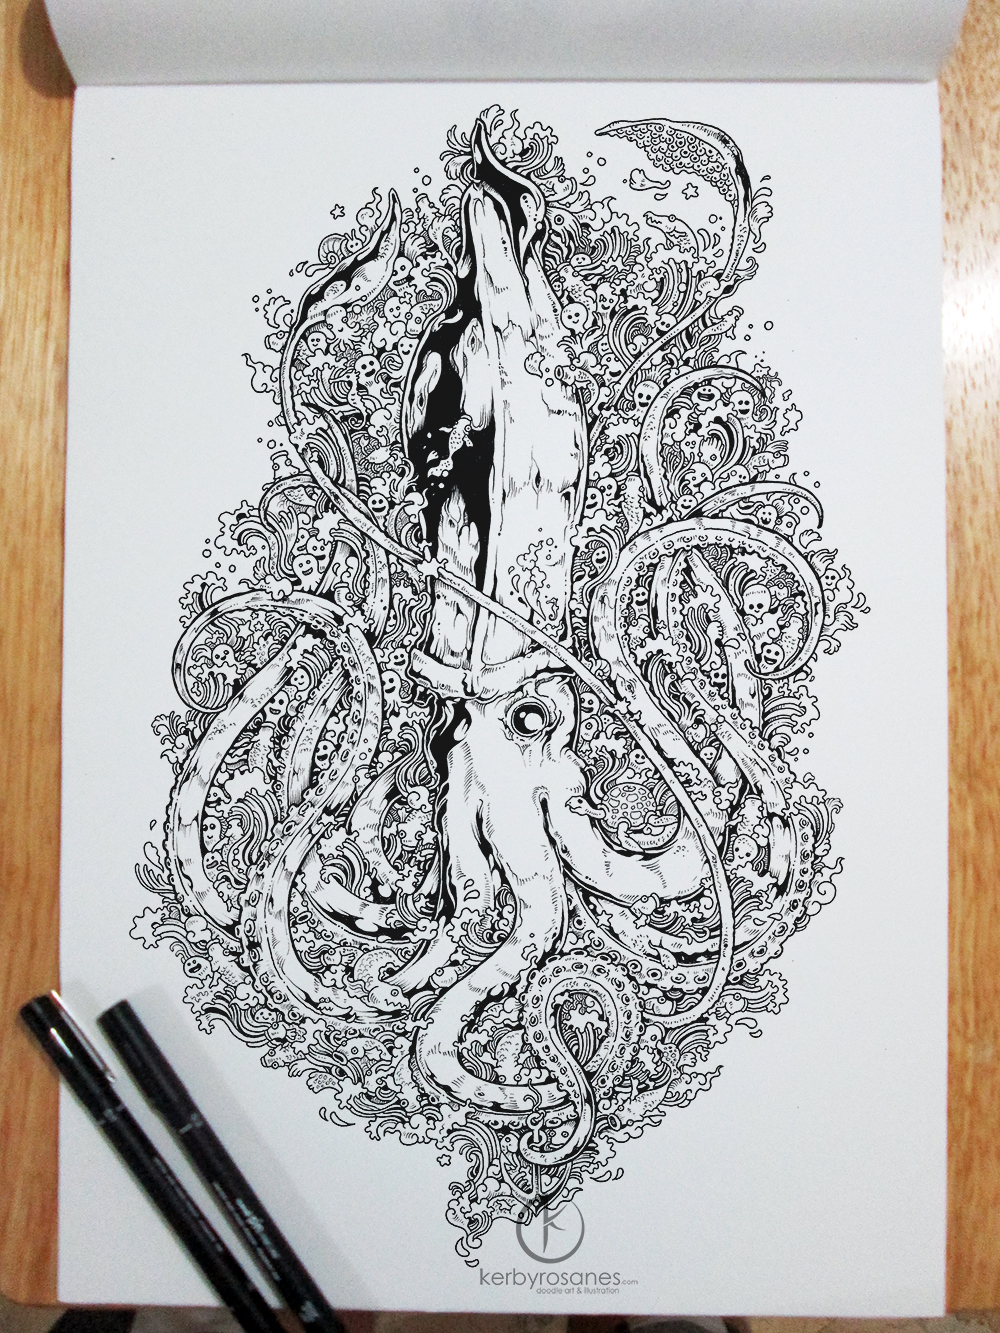 Kerby rosanes doodler by night lost in internet for Kerby rosanes